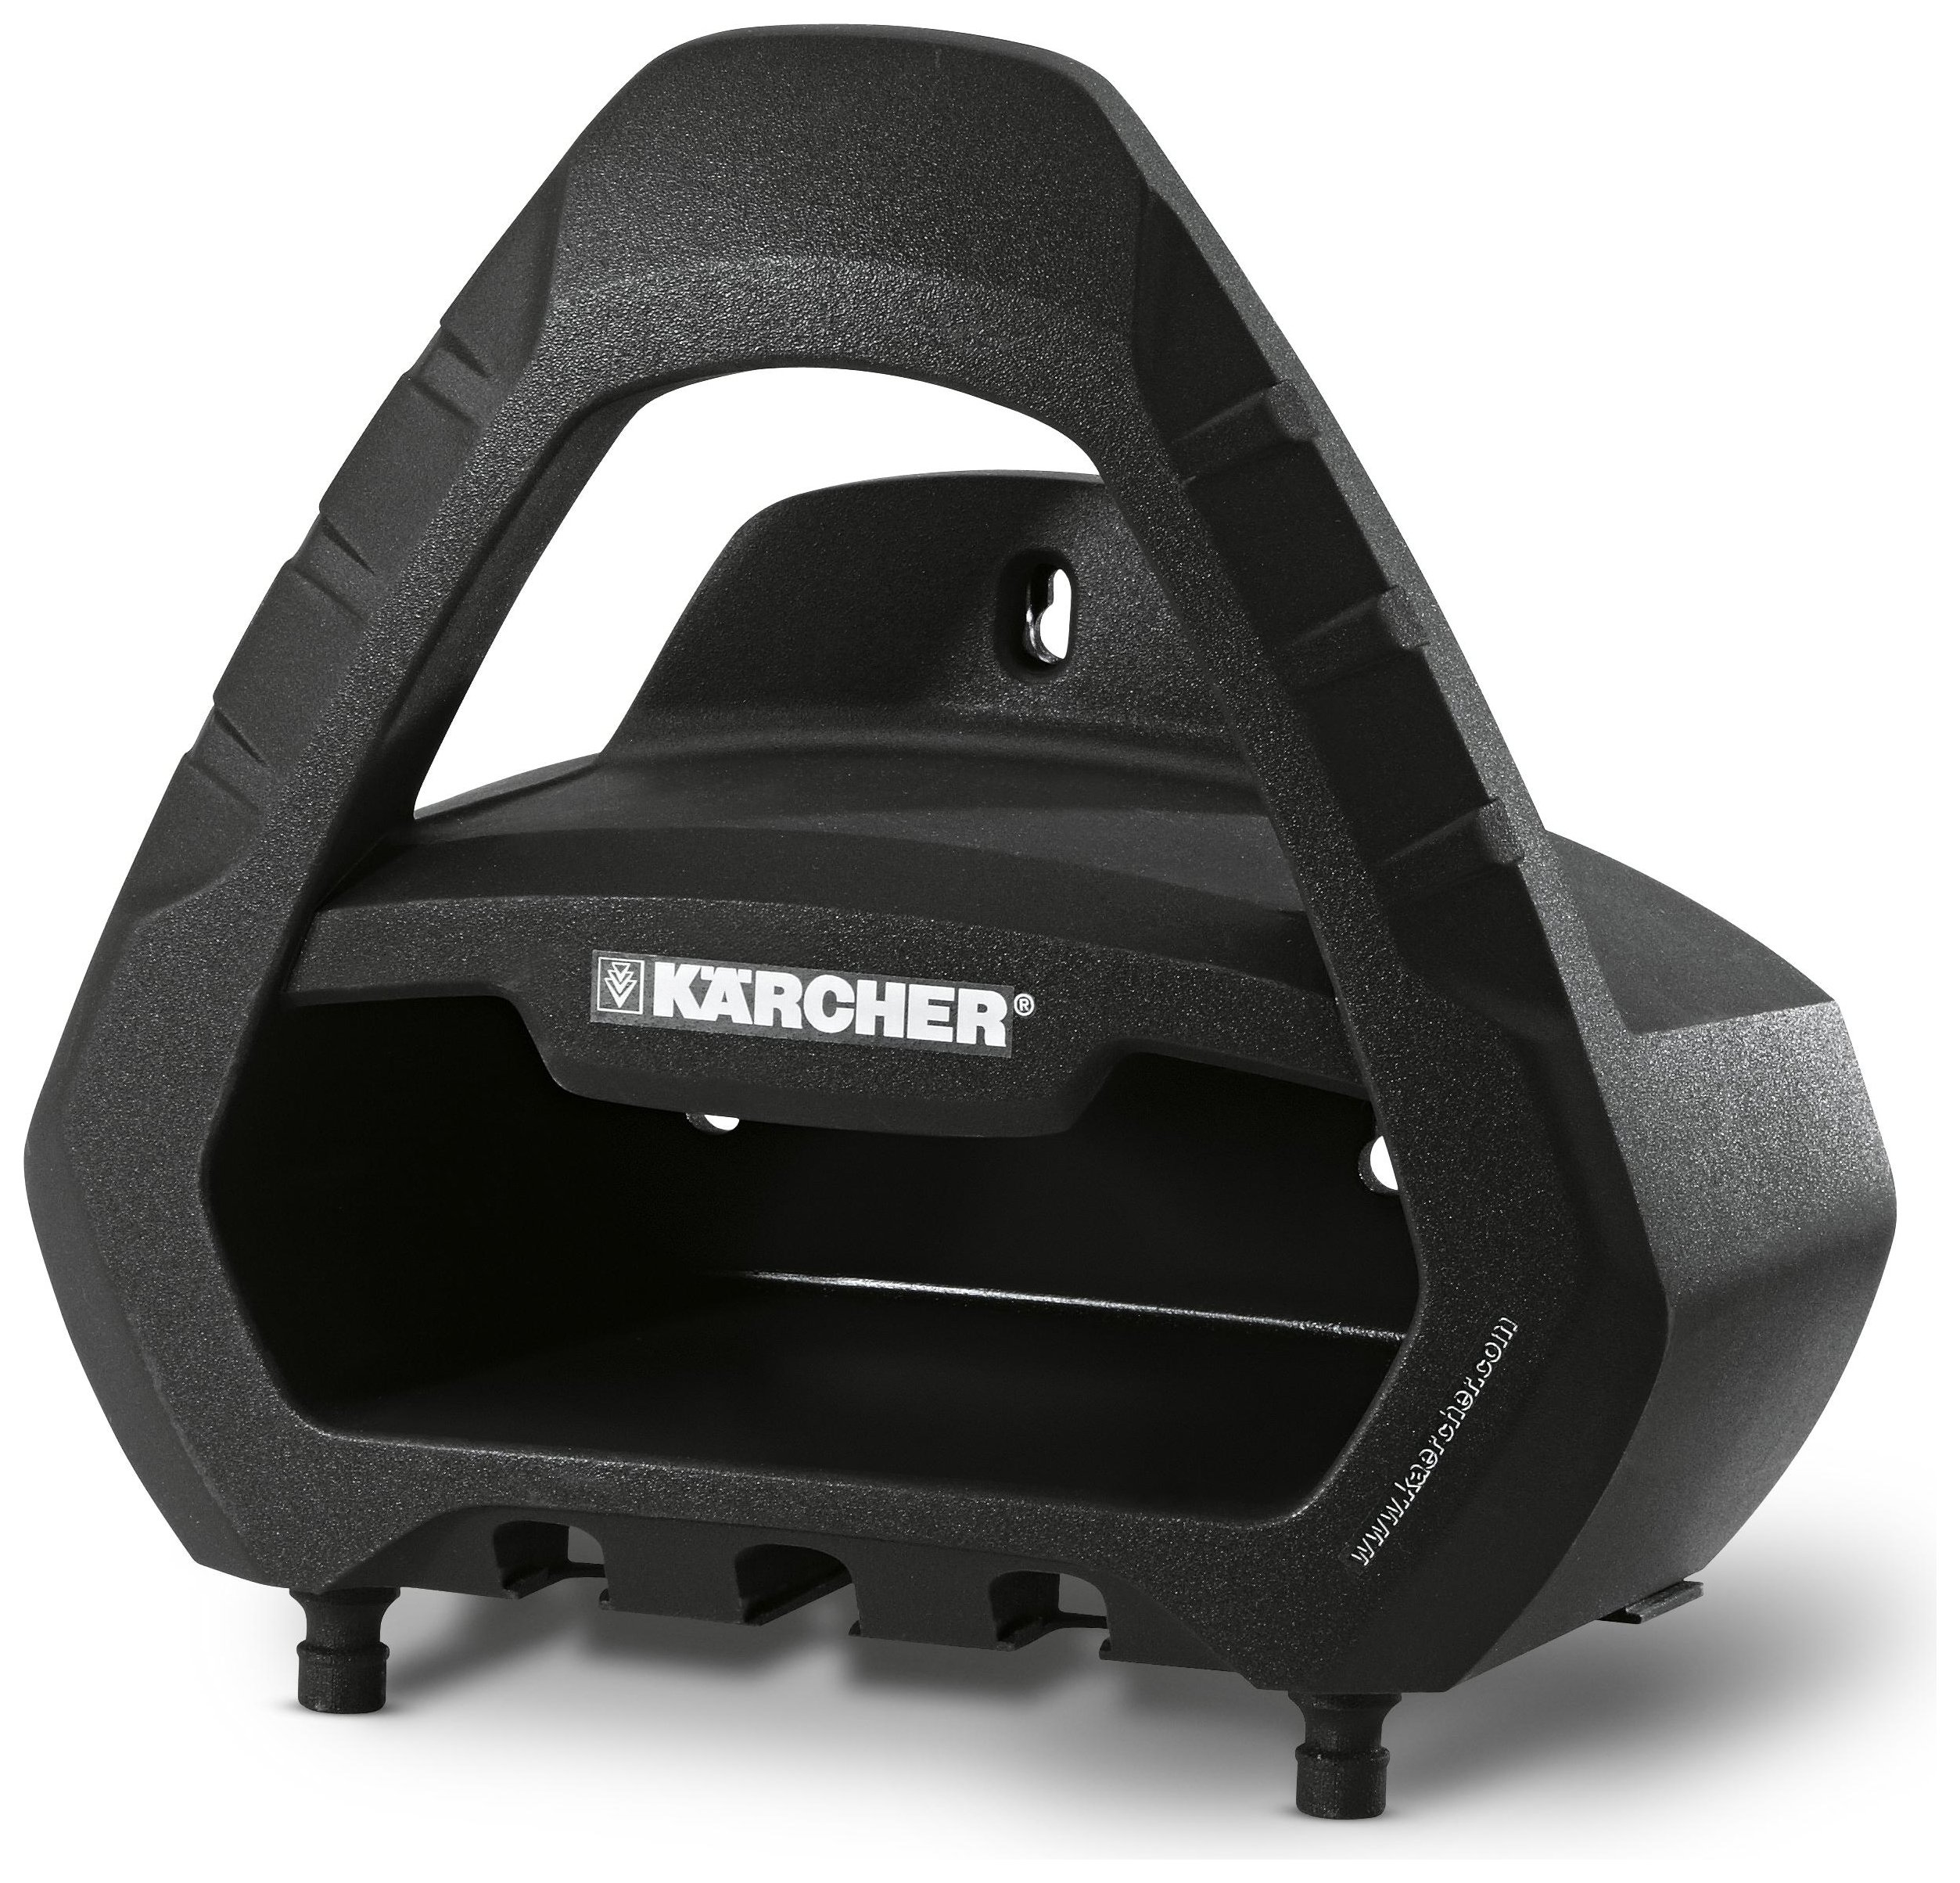 karcher hose hanger plus gay times uk. Black Bedroom Furniture Sets. Home Design Ideas